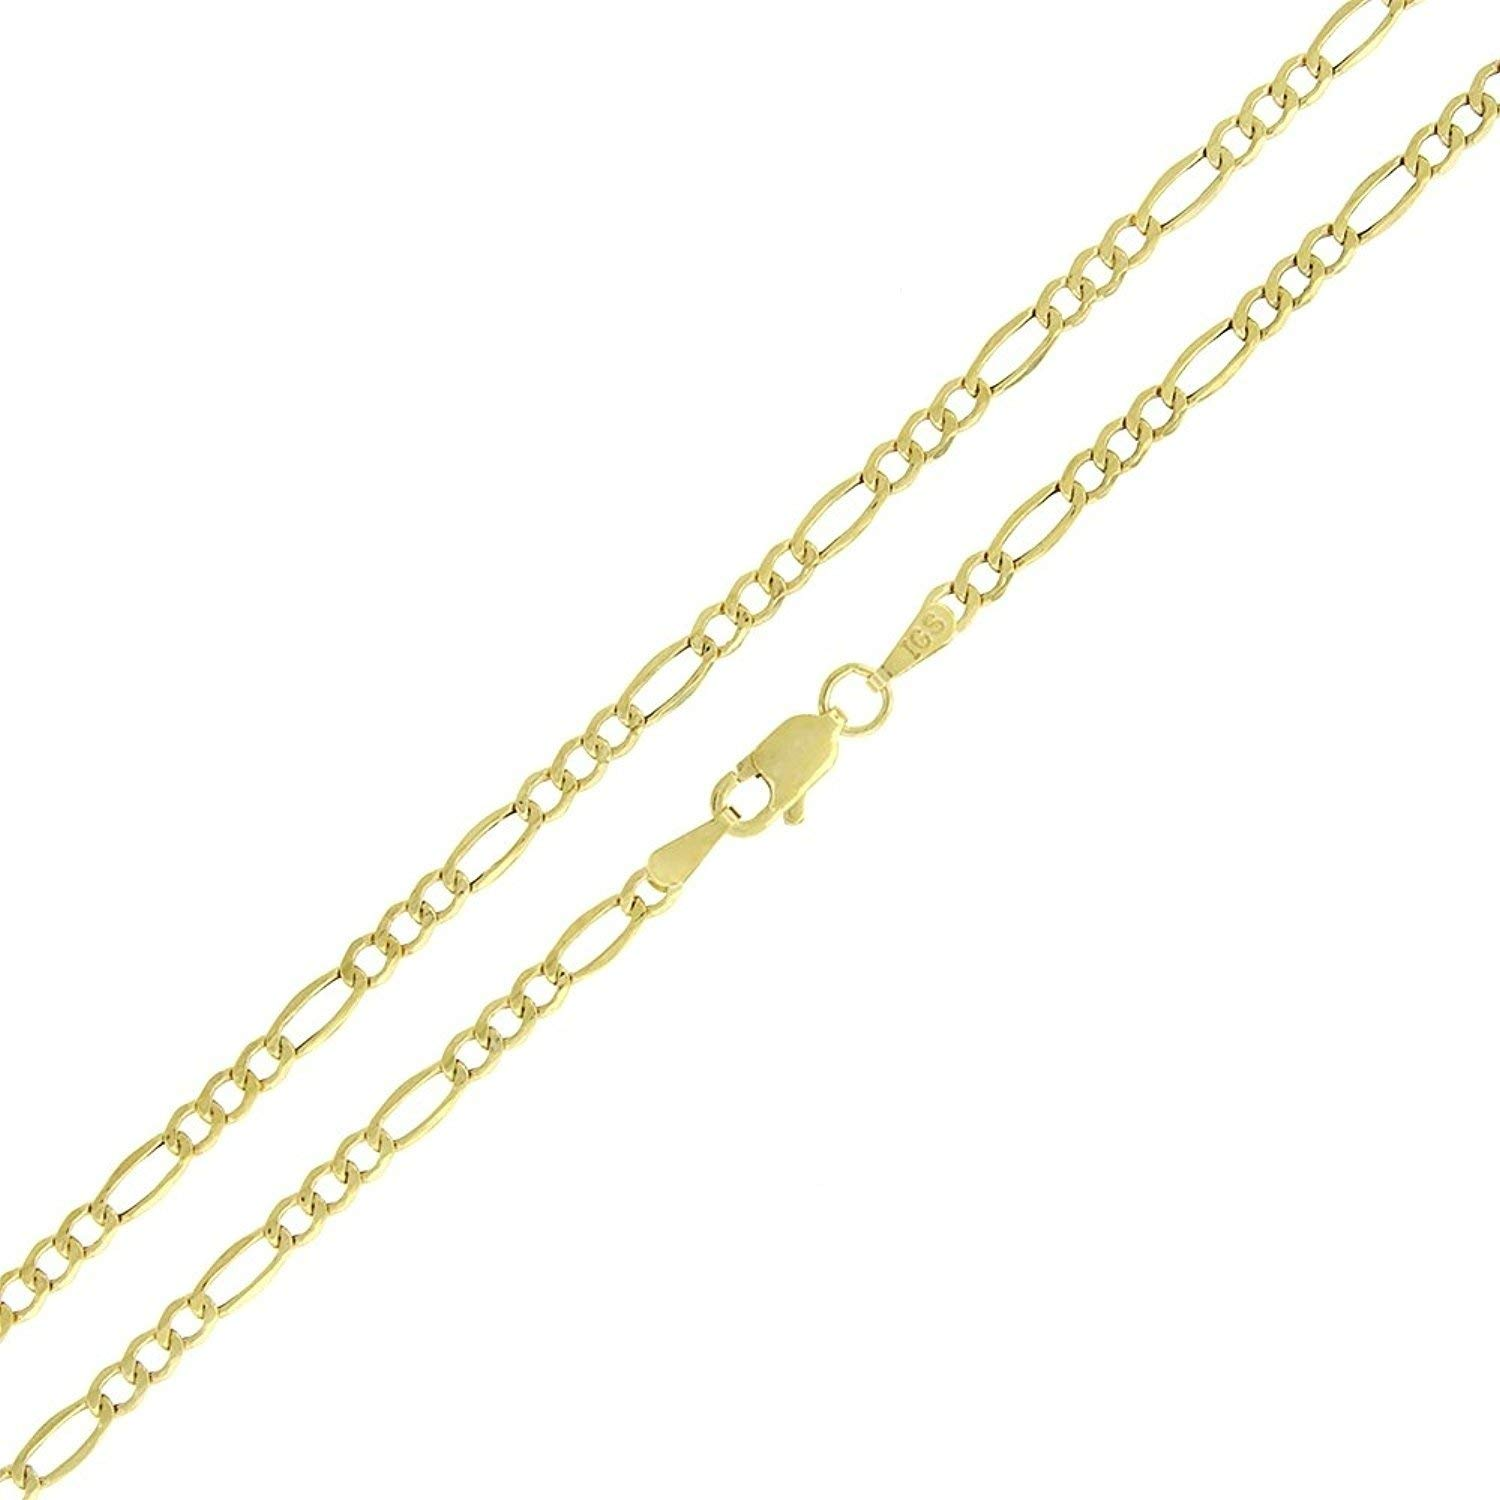 Becca Code 14k Yellow Gold 2MM Hollow Figaro Chain Necklace 24''